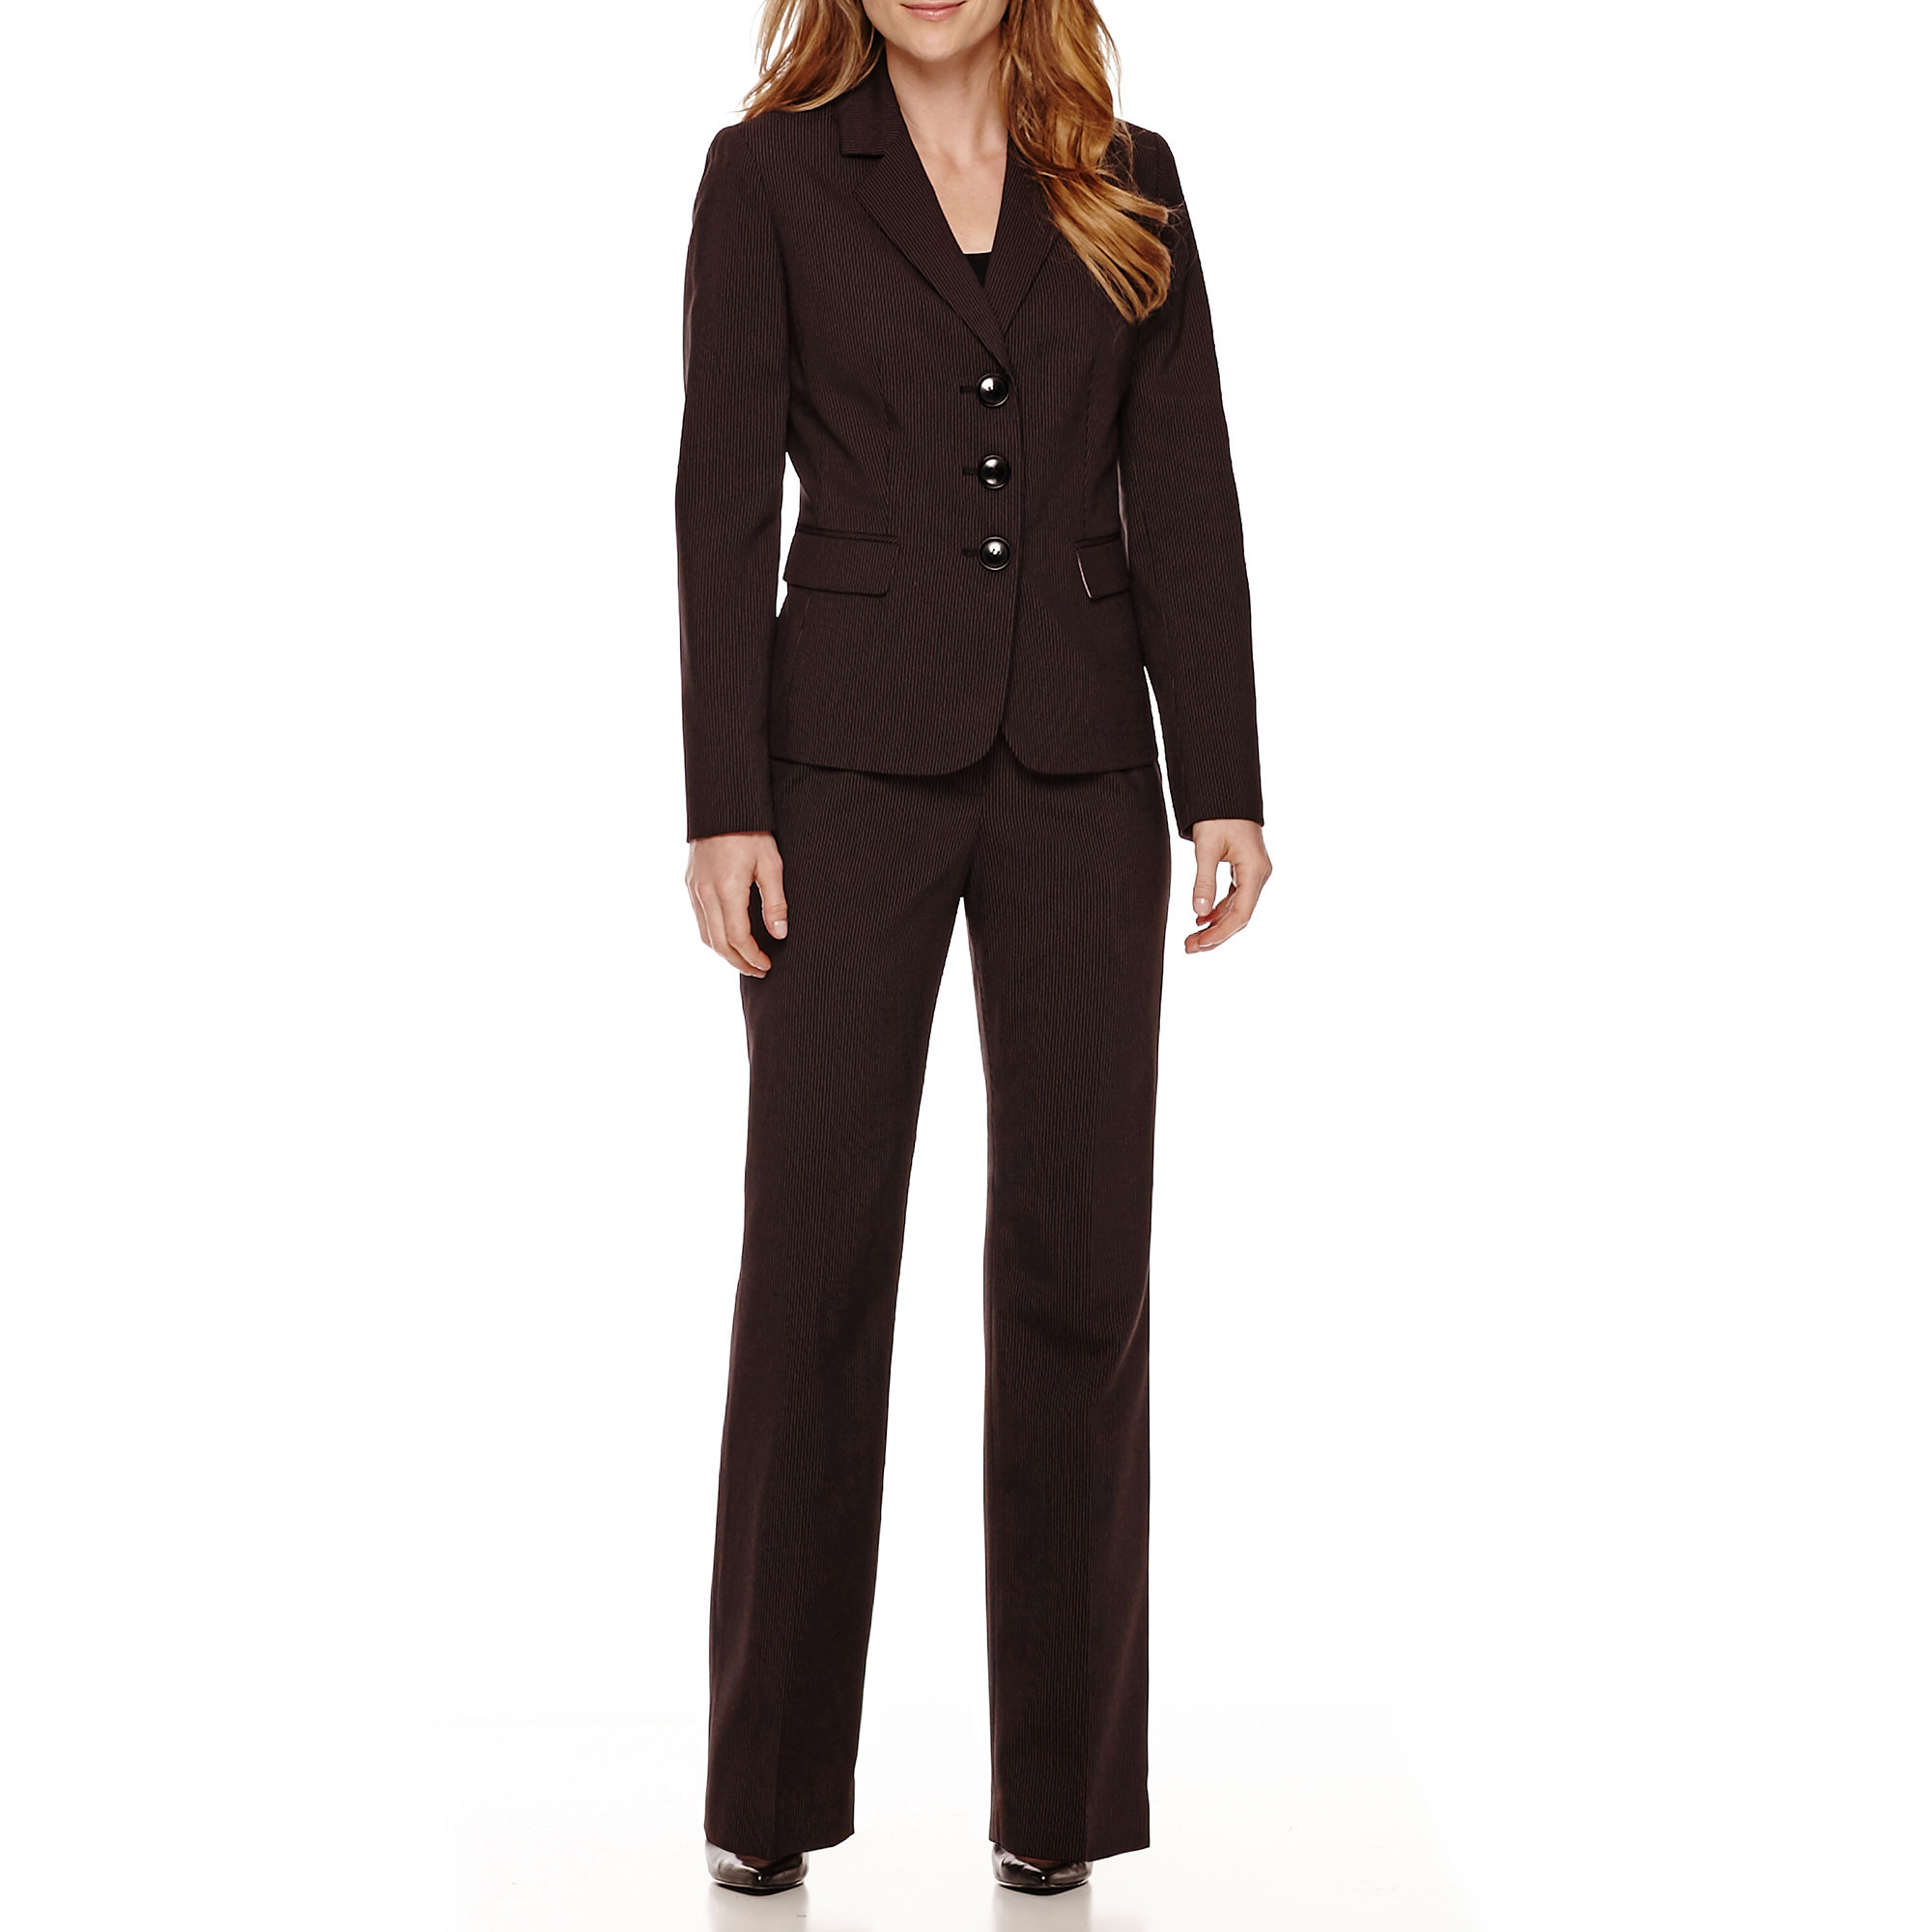 Fantastic Wedding Pant Suits On Pinterest  Pant Suits Mother Of The Bride And